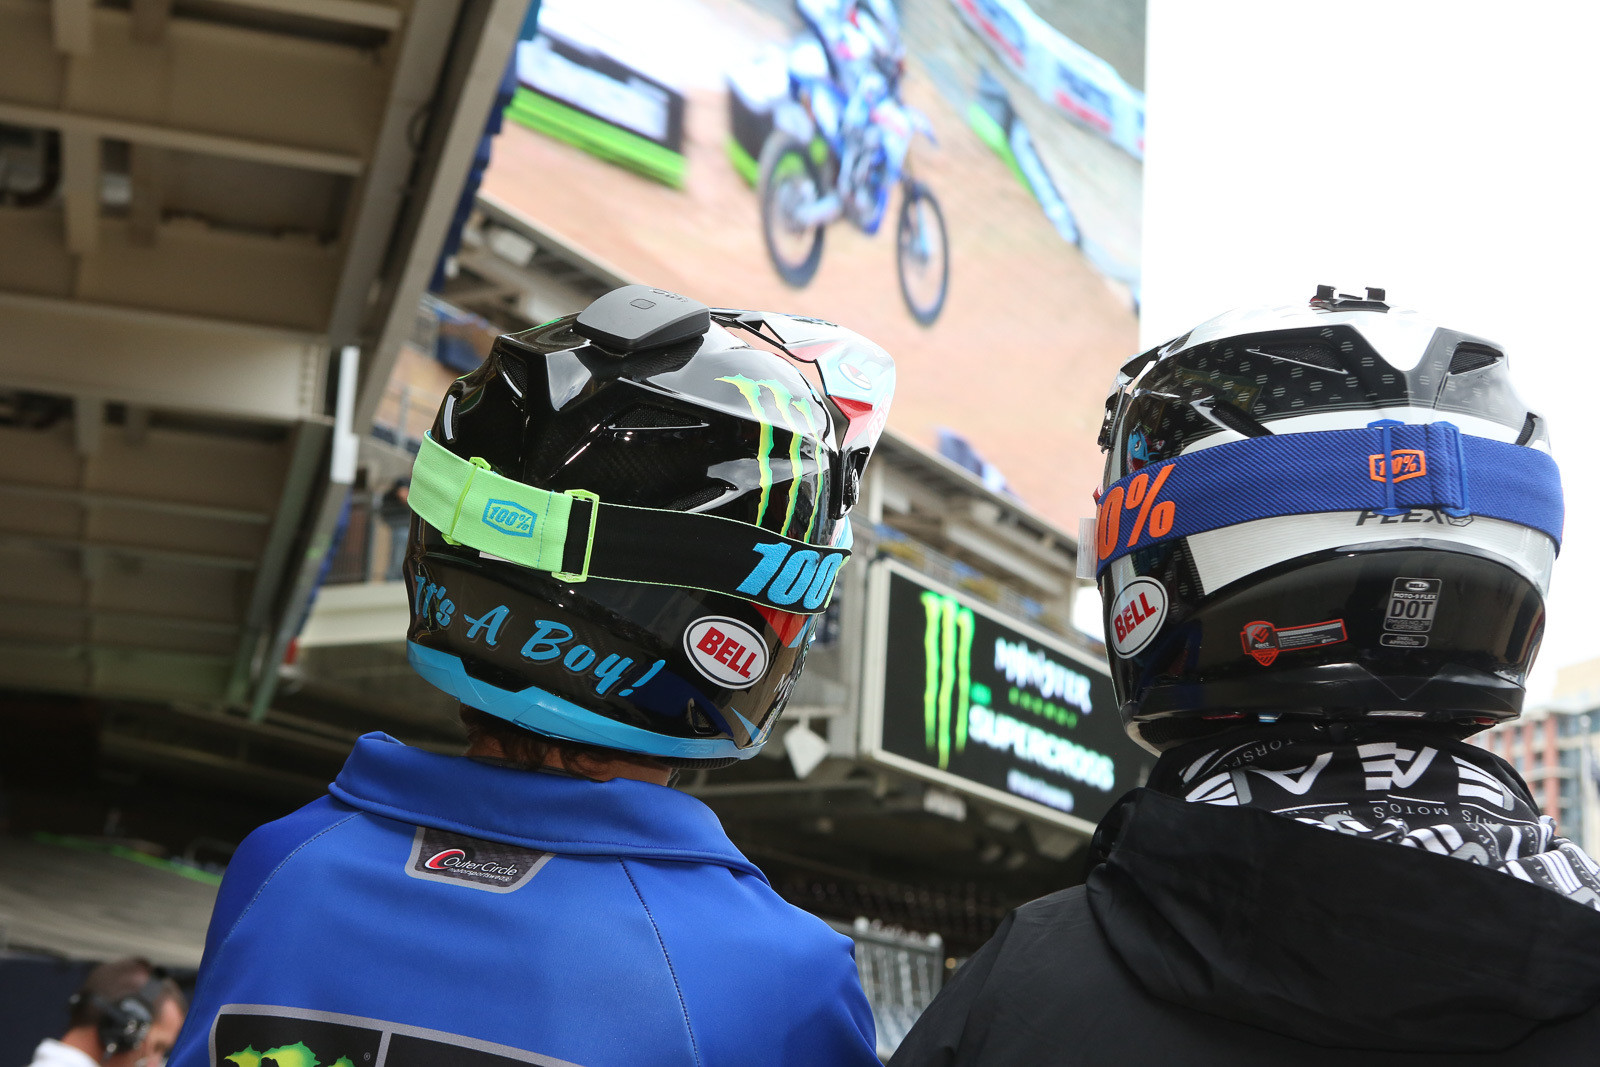 Aaron Plessinger's new Bell helmet (left) also featured a gender reveal for the new addition to the family.